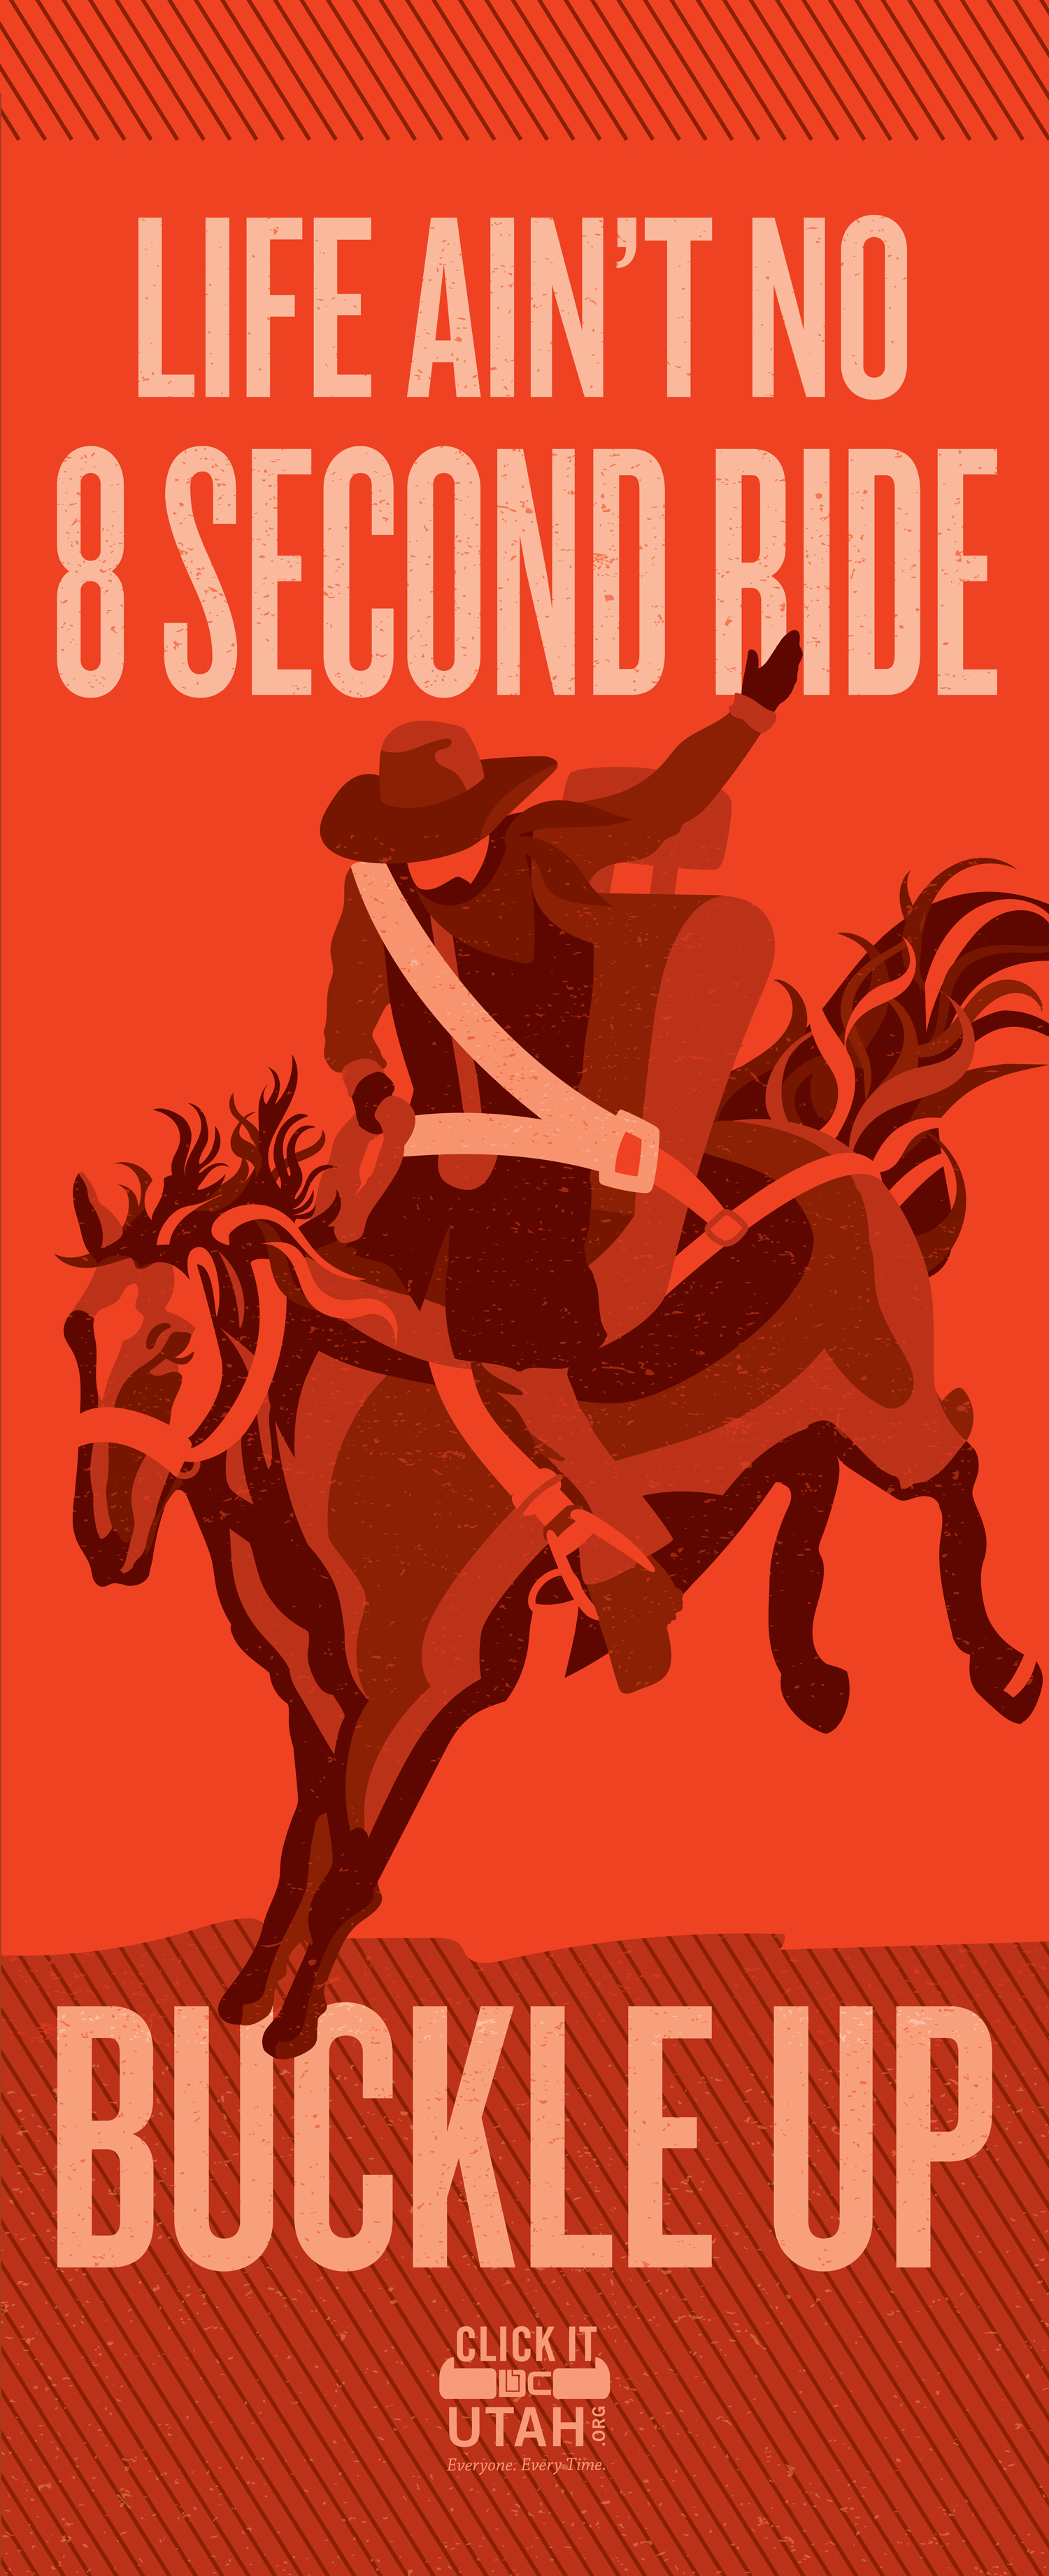 """Graphic of cowboy riding rodeo horse with text """"Life ain't no 8 second ride - buckle up."""""""